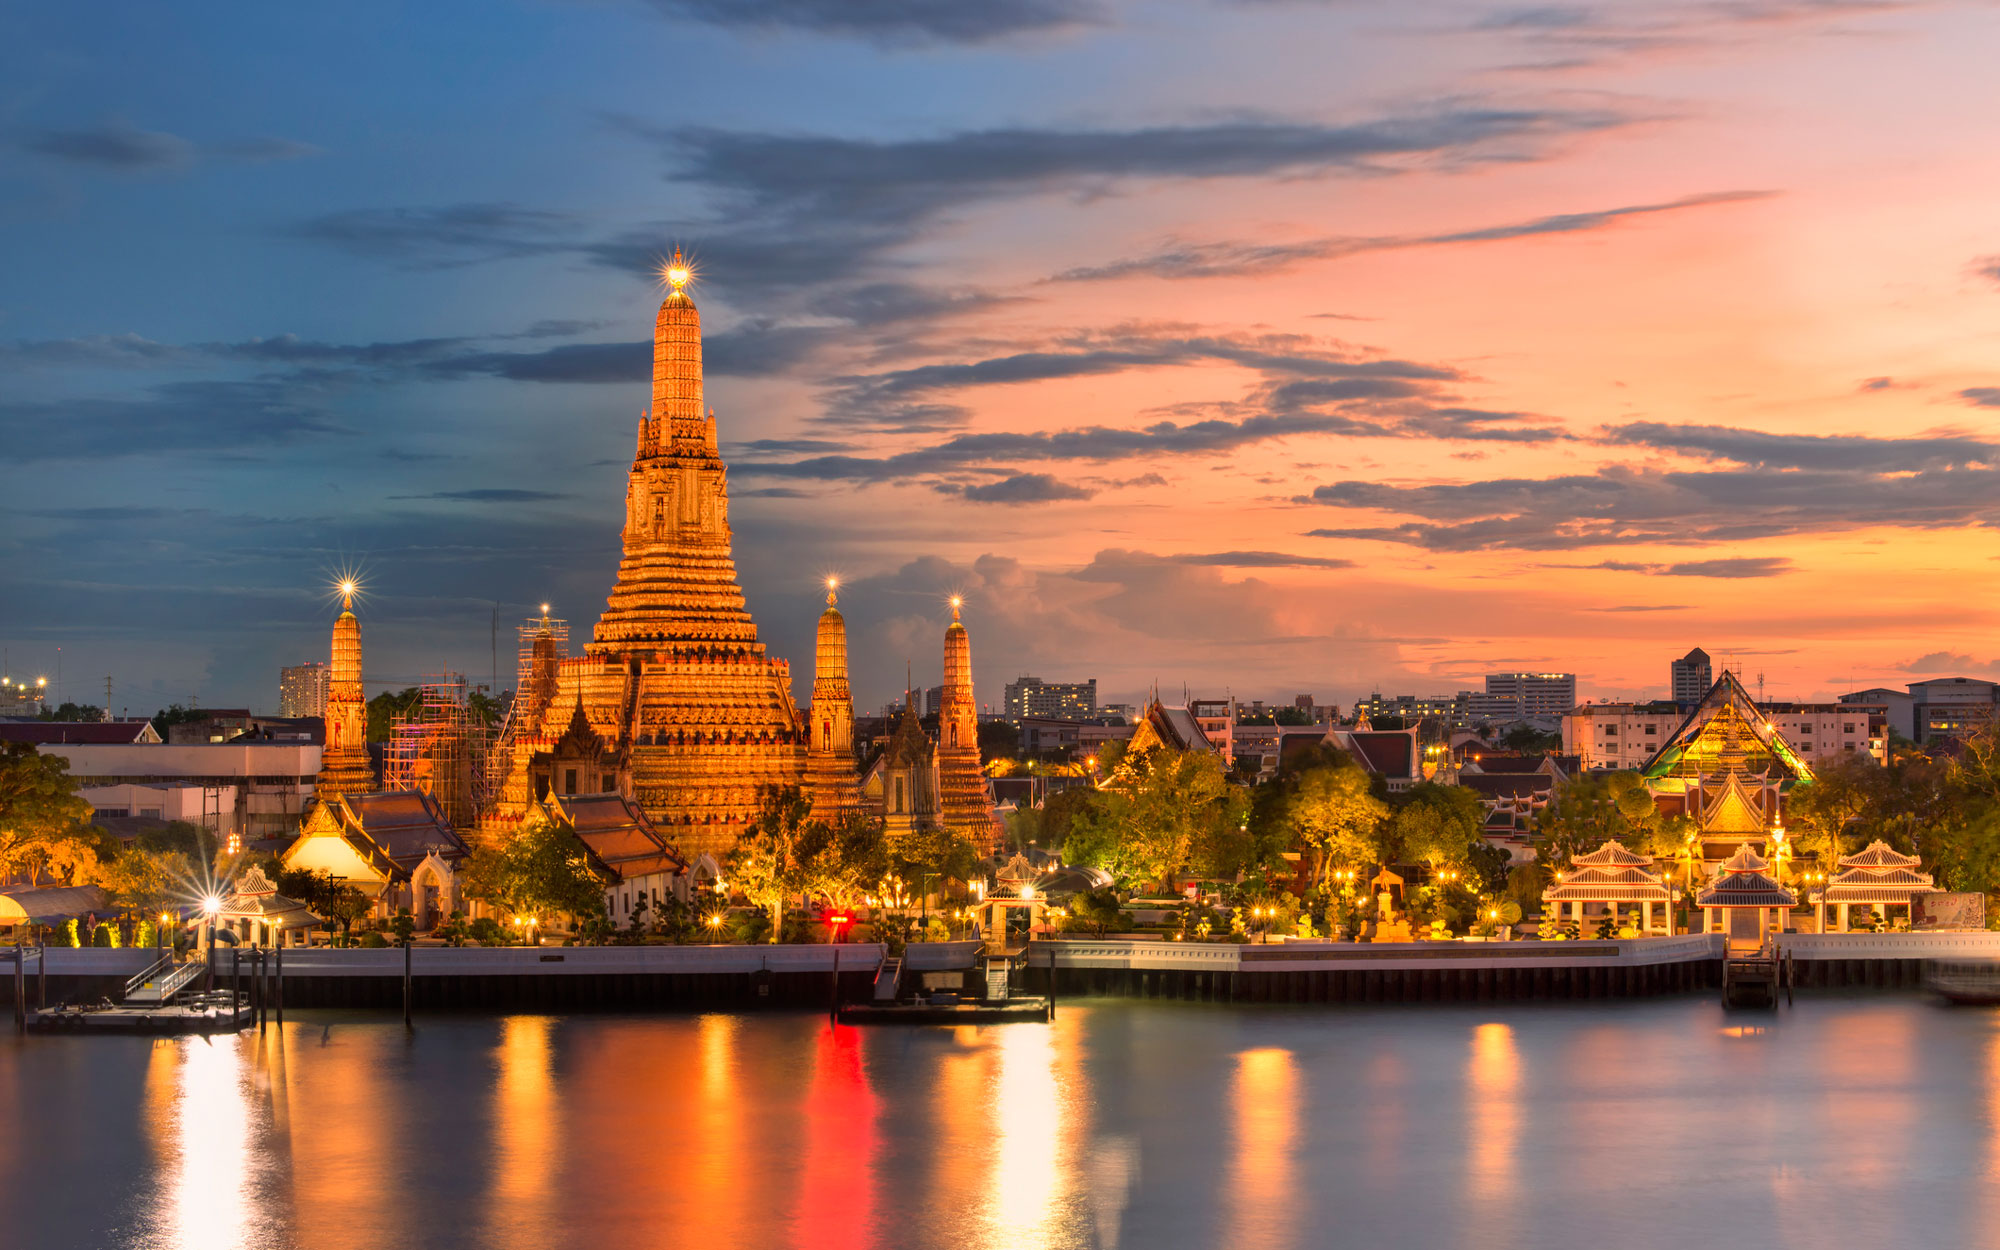 Travel to Bangkok This Fall for $475 Round-trip